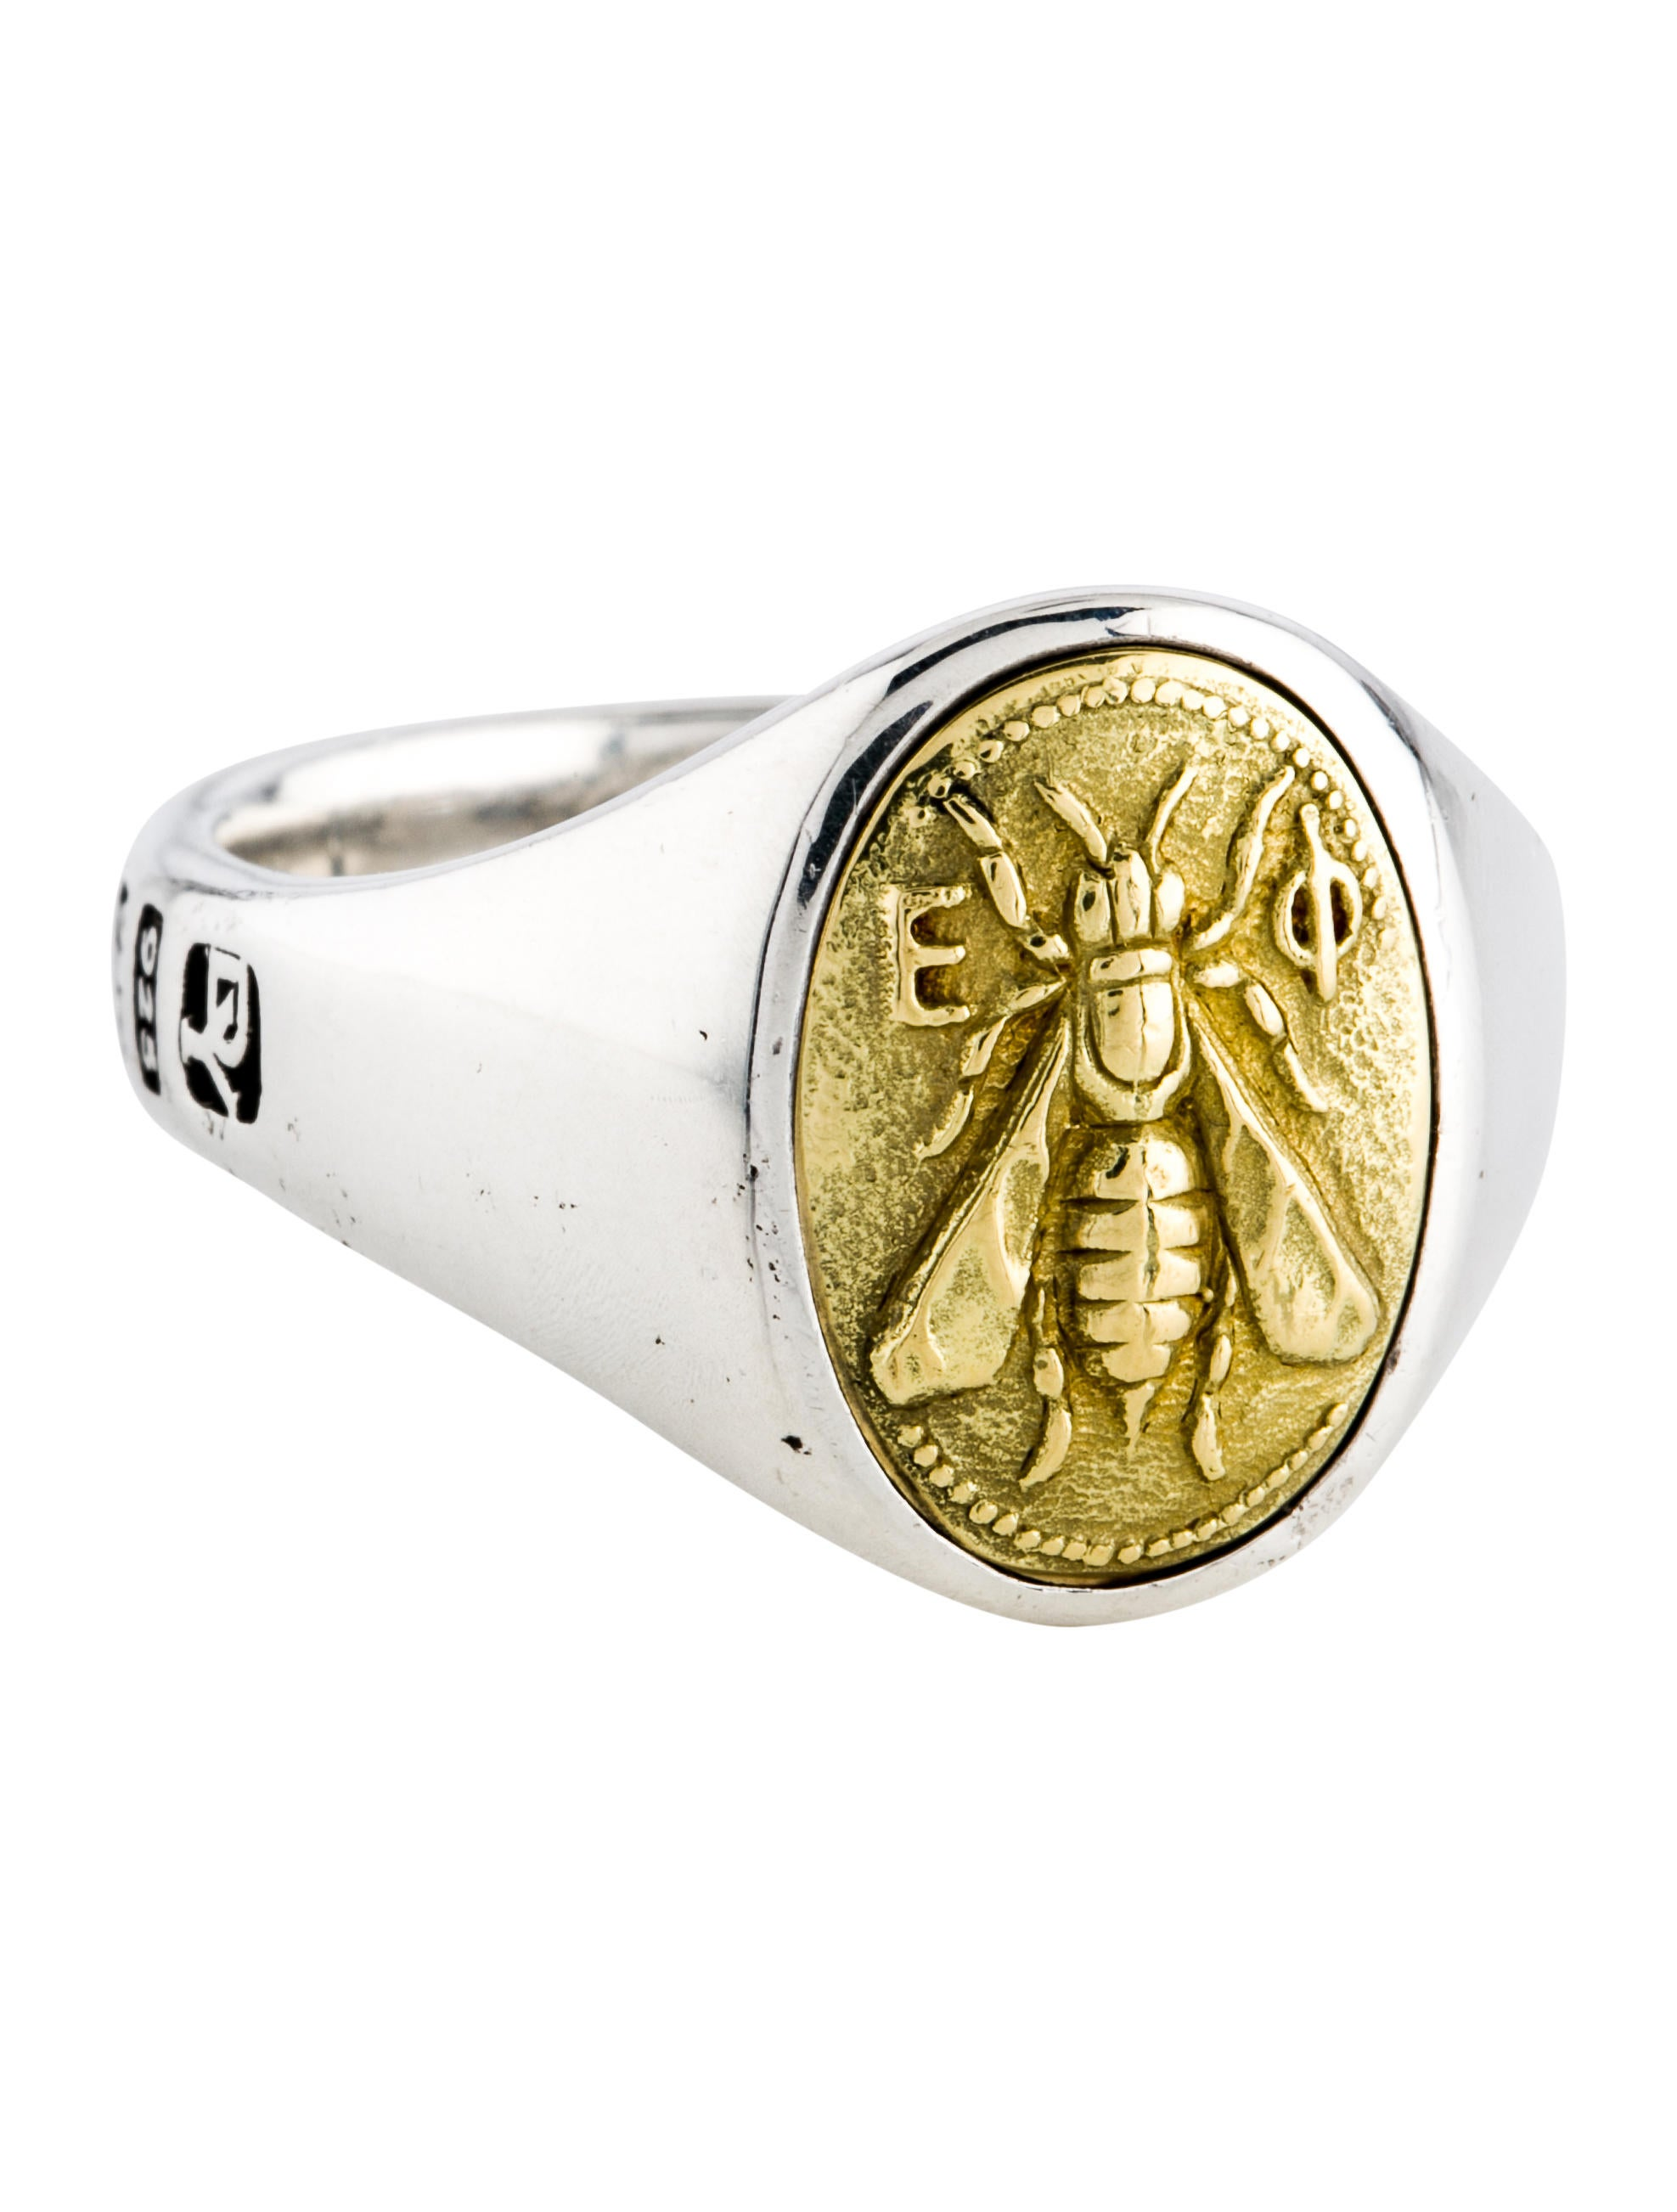 b50fb3d4c David Yurman Two-Tone Petrvs Bee Signet Ring - Rings - DVY47694 ...